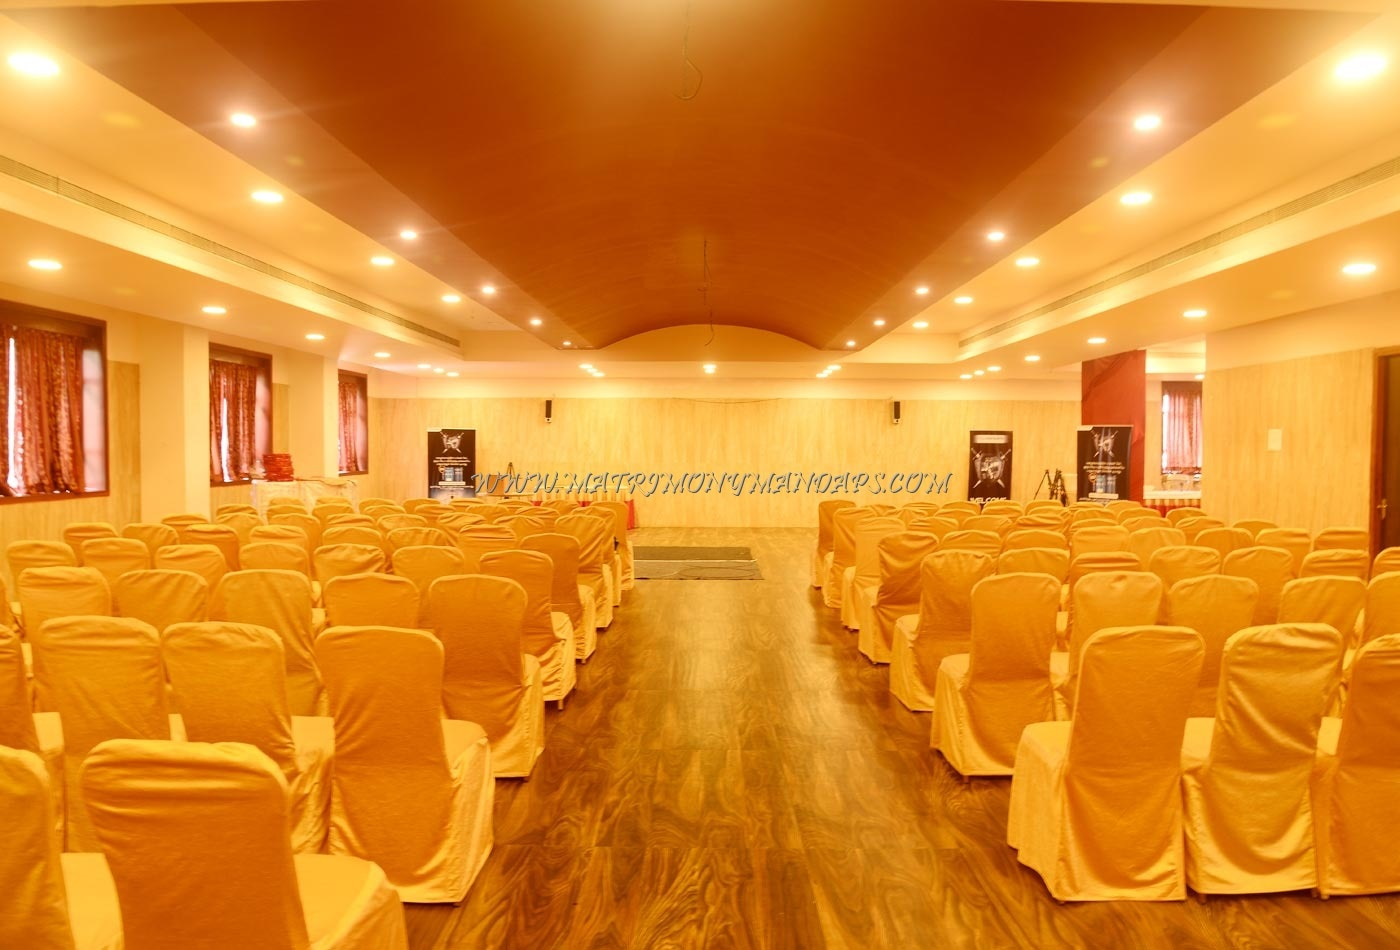 Find the availability of the AGH Pale (A/C) in Ambattur, Chennai and avail special offers